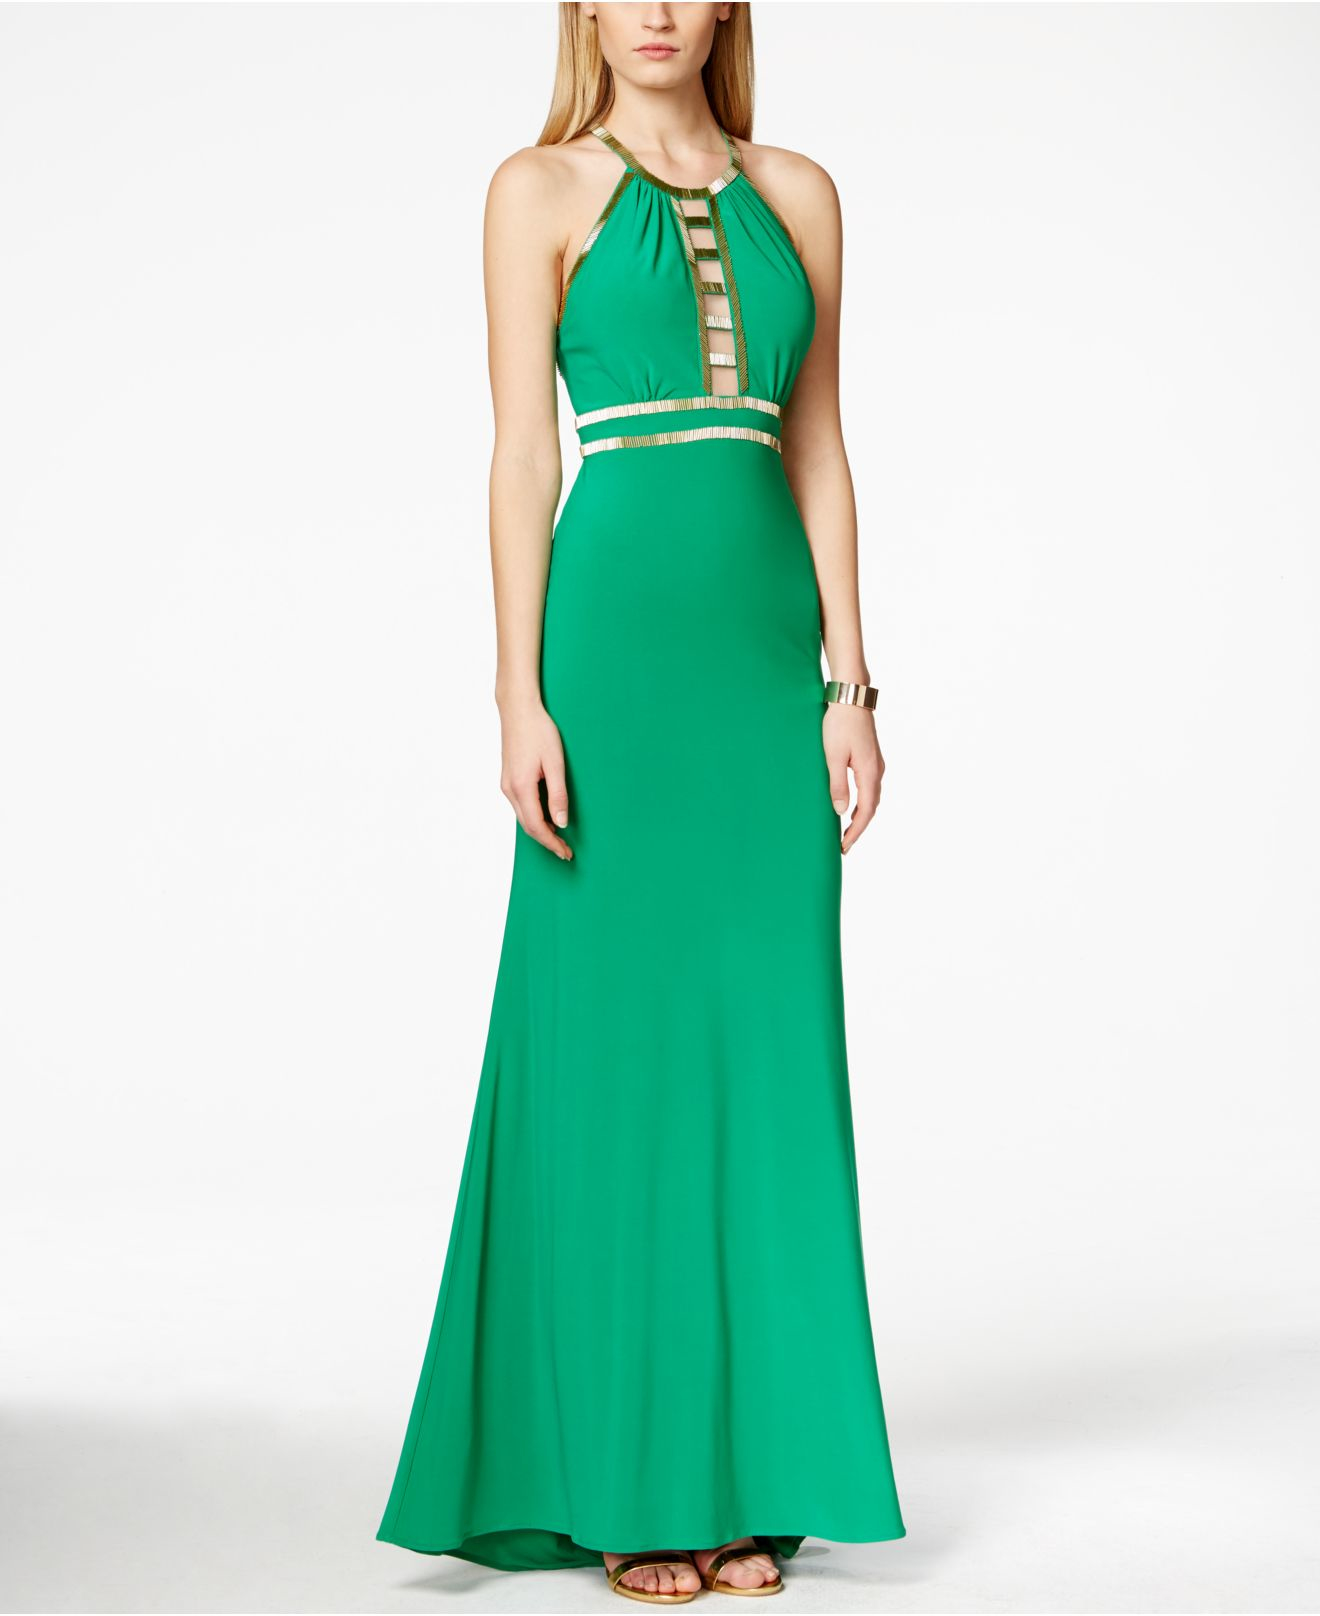 Xscape Embellished Cutout Gown in Green | Lyst